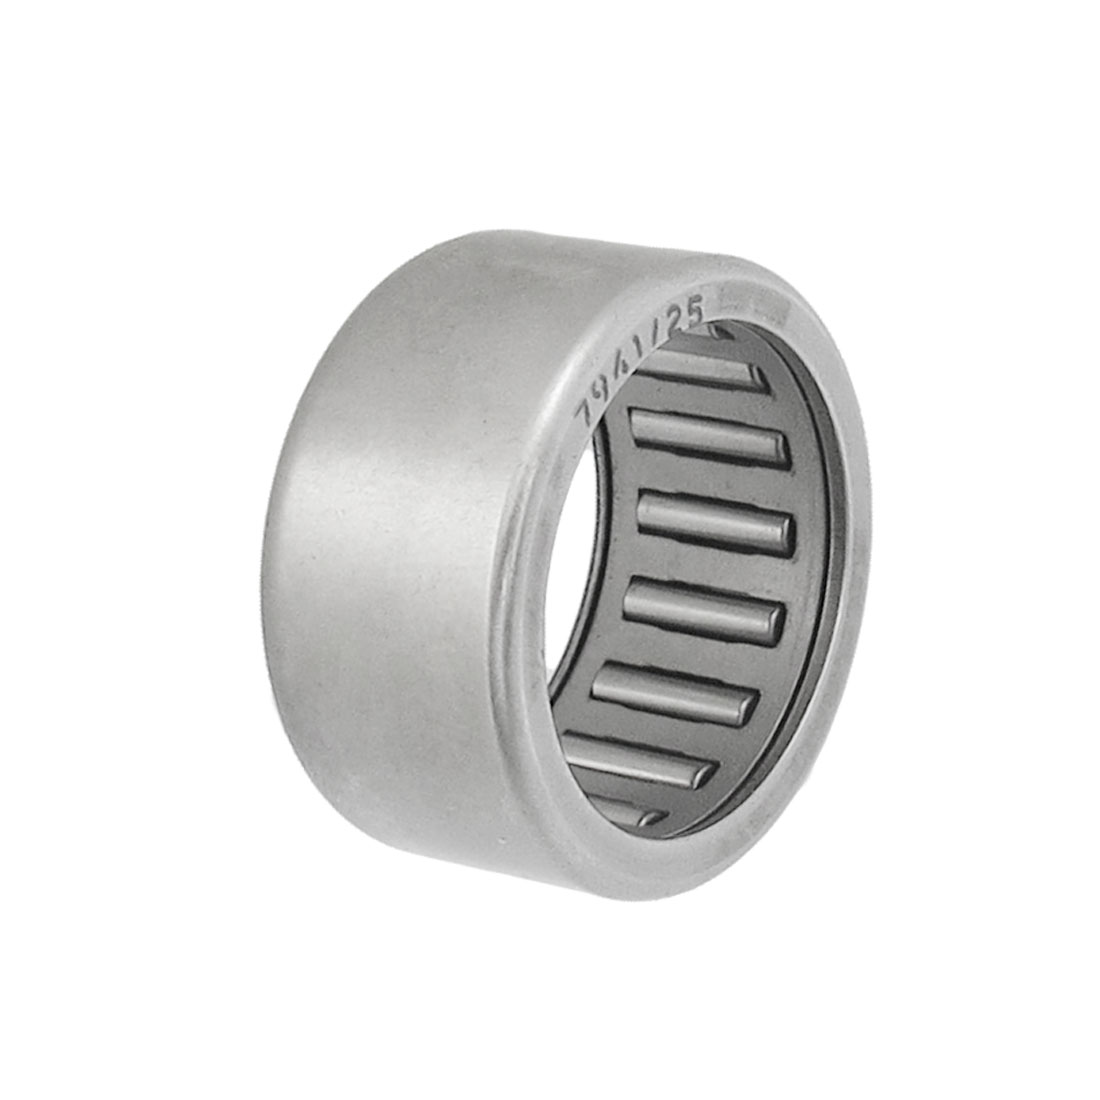 HK253216 25 x 32 x 16mm Drawn Cup Caged Drawn Cup Needle Roller Bearing